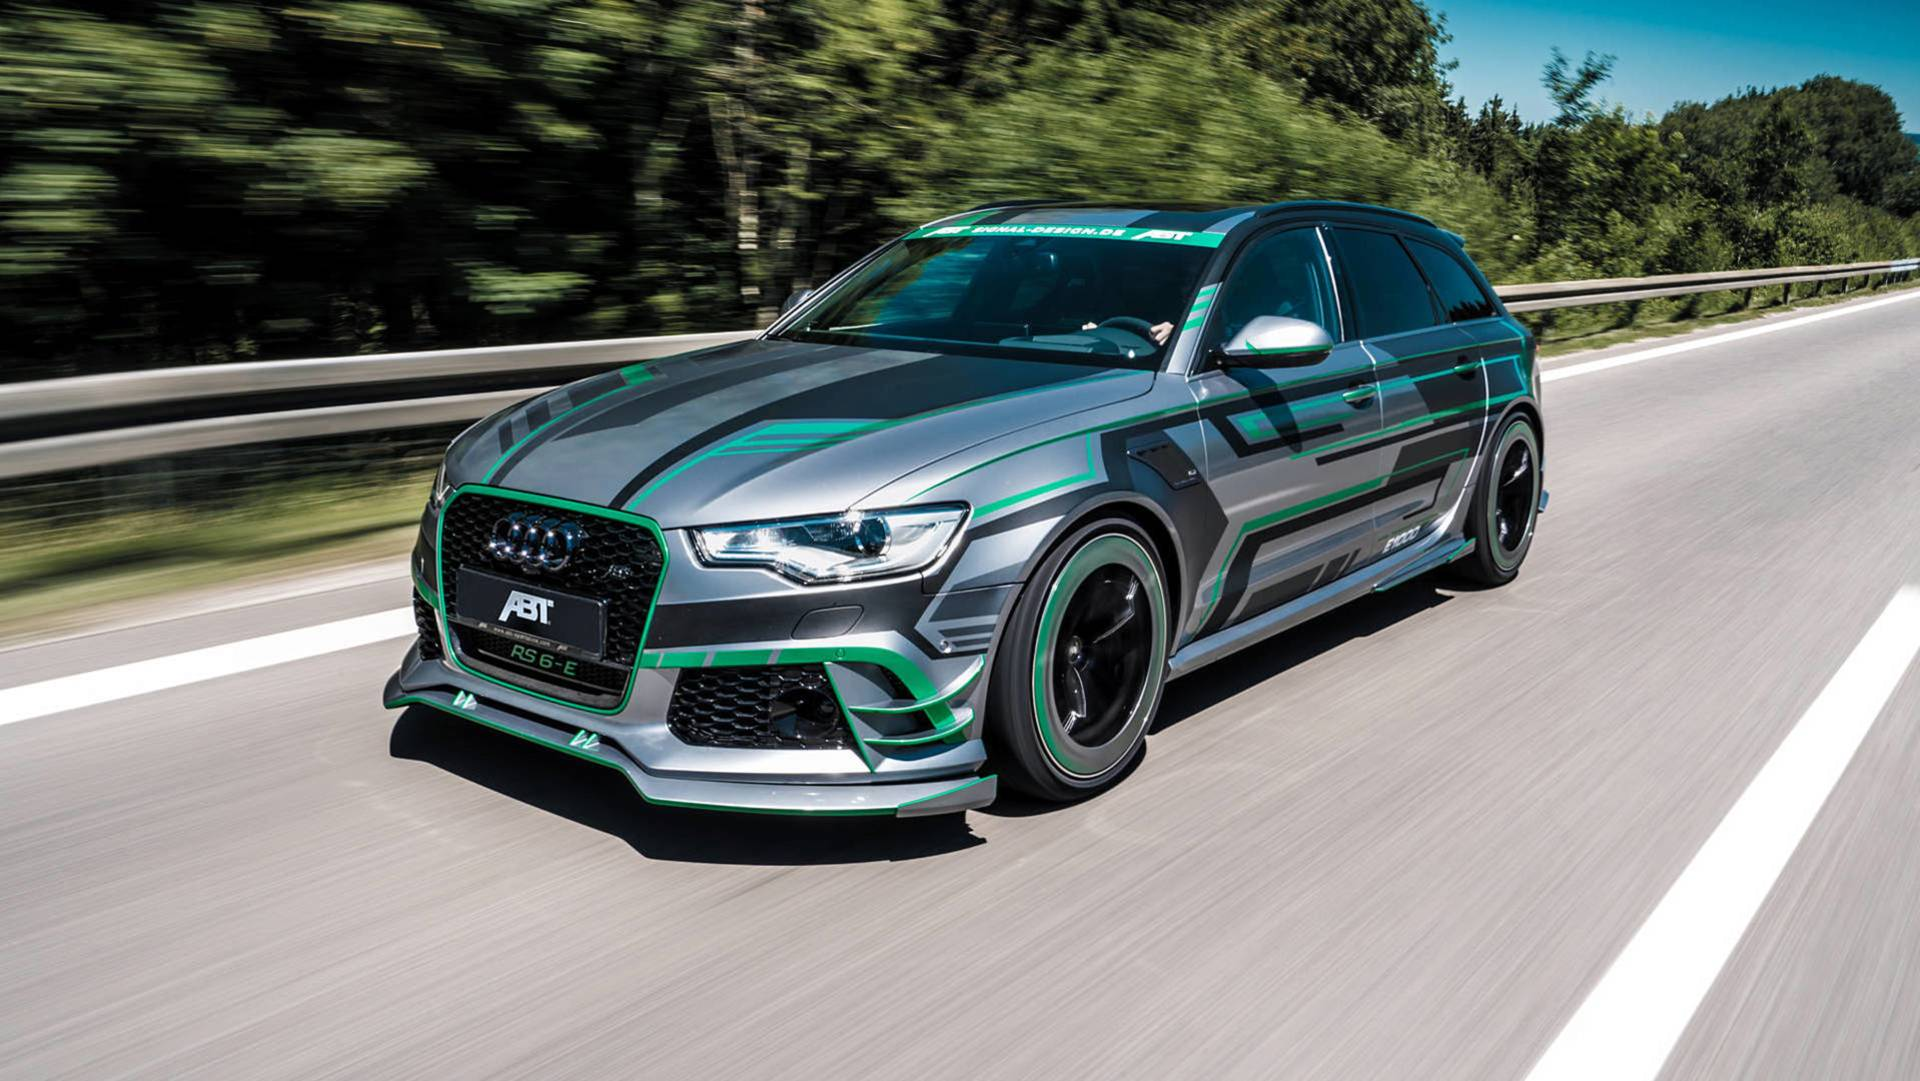 The car design atelier began by using its own customized RS6 design, rather than a production vehicle